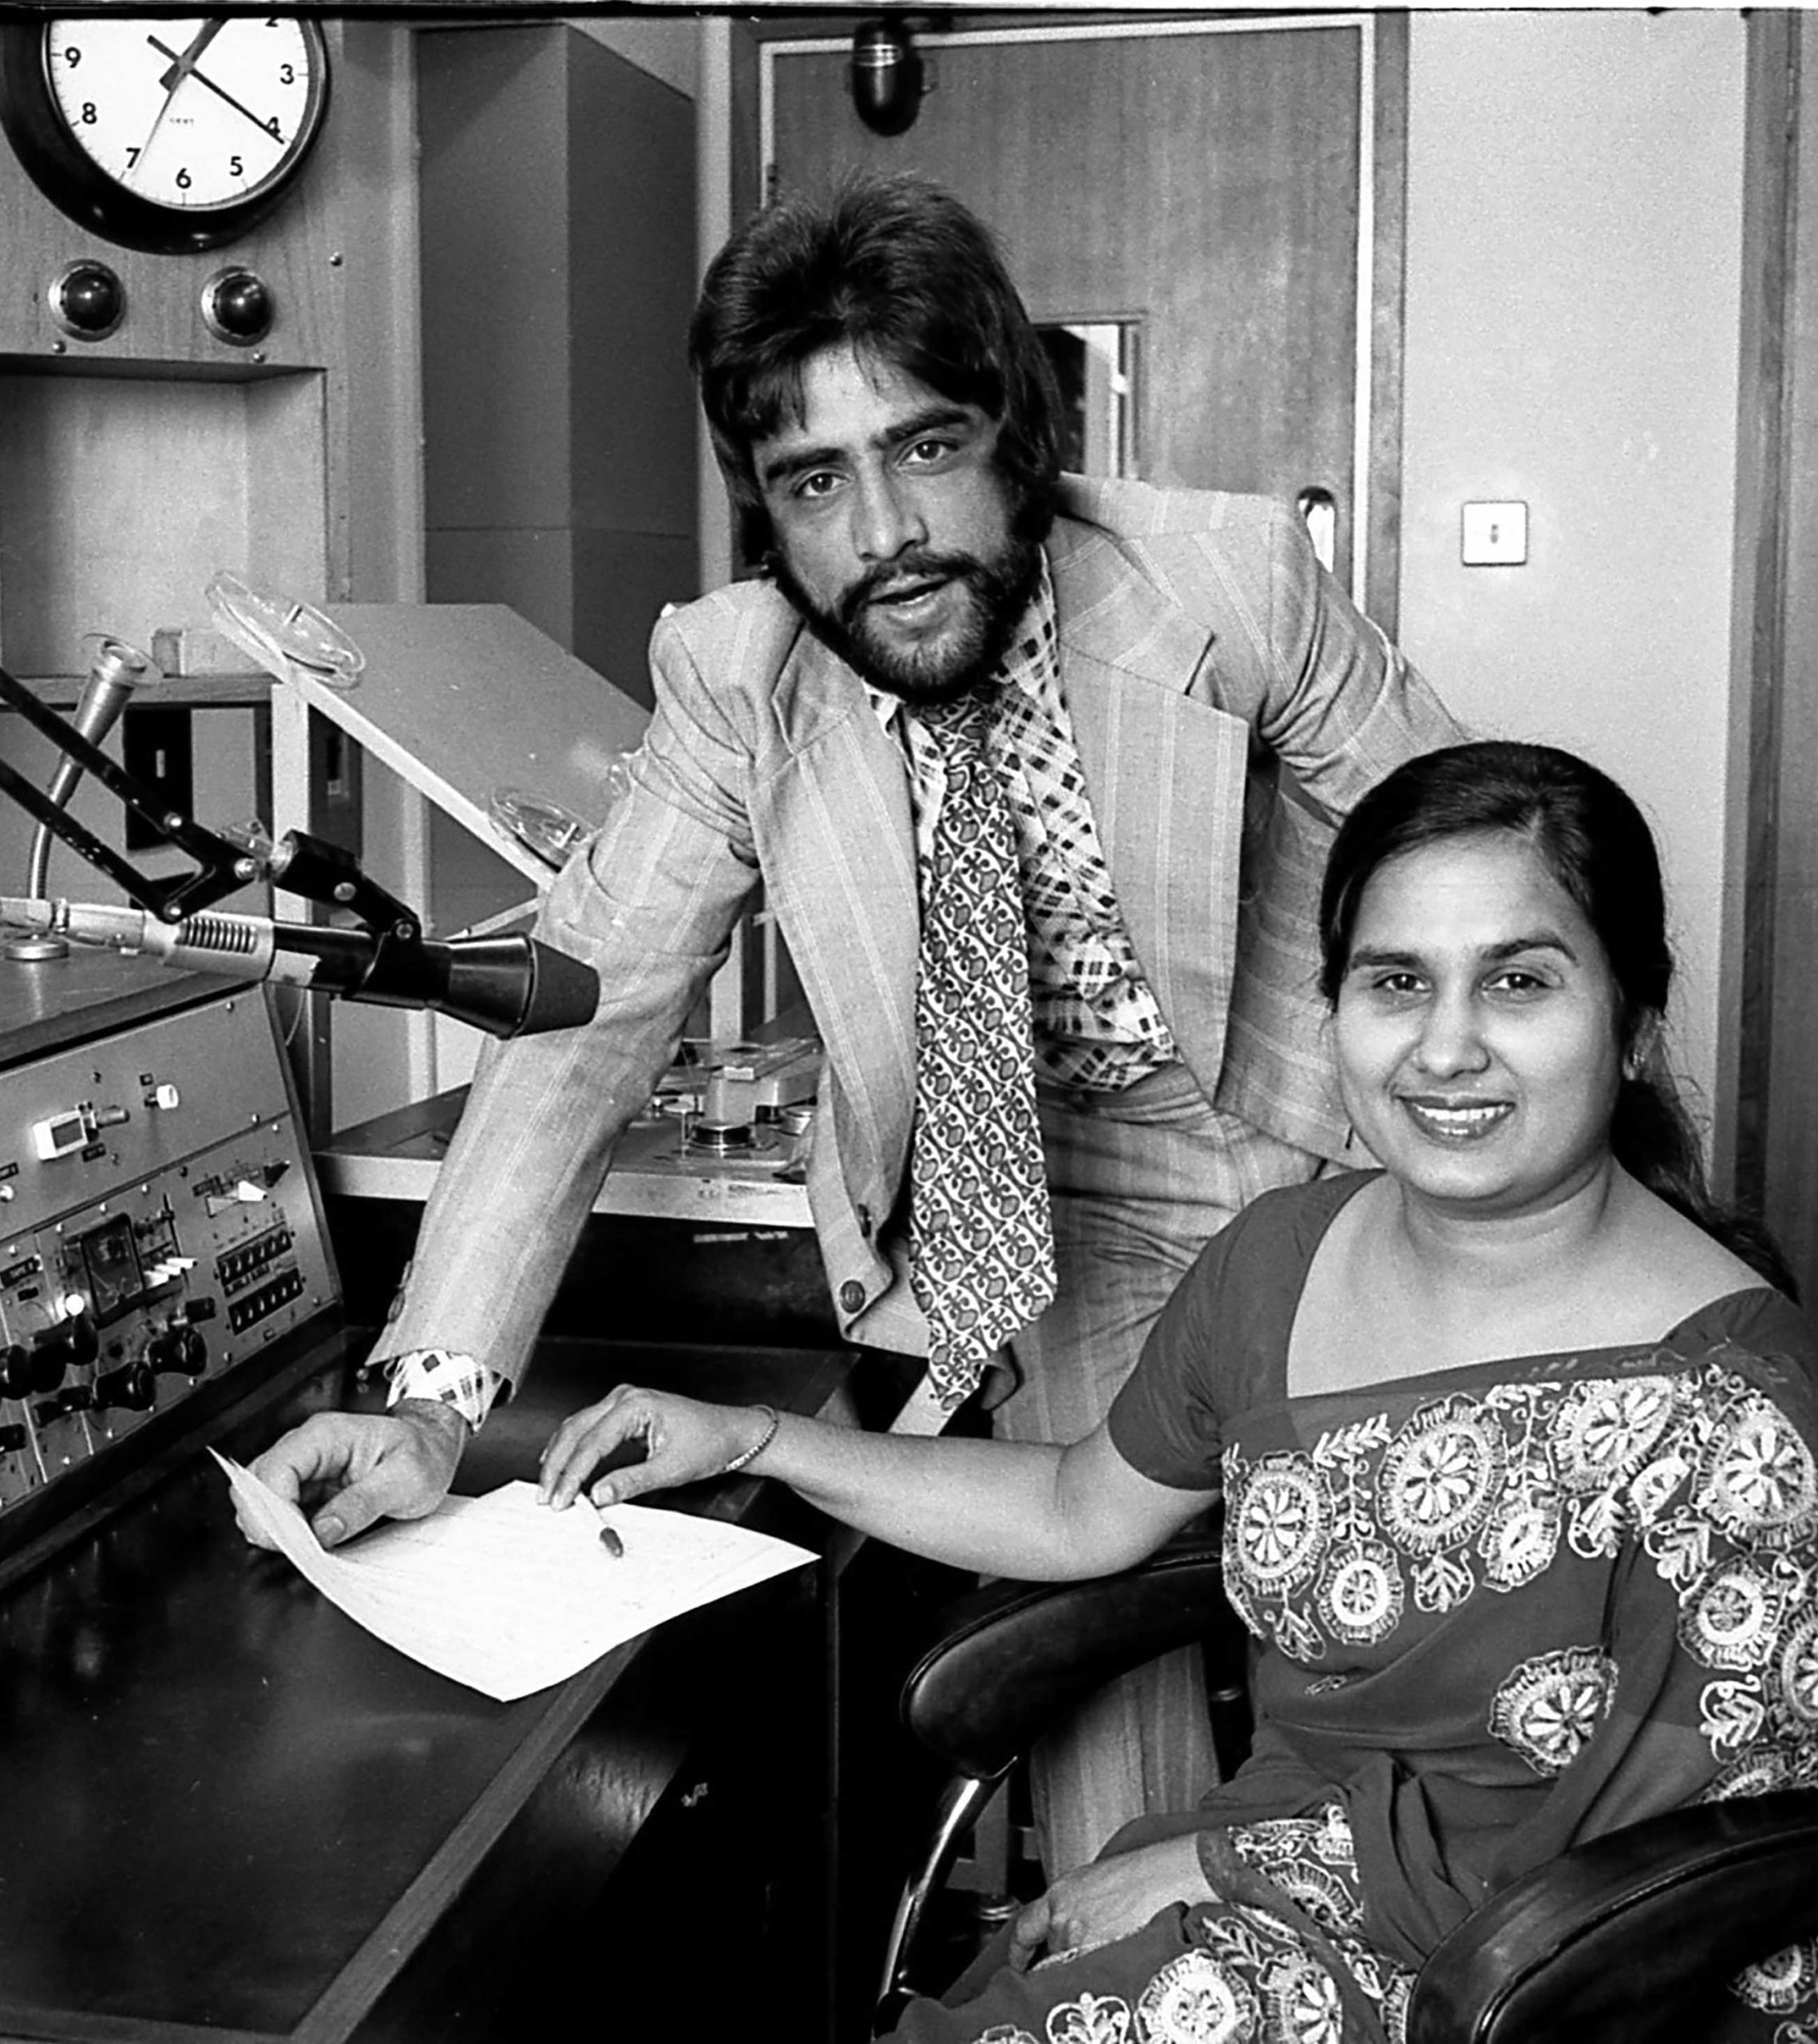 Black and white photograph of a bearded Asian man in suit and tie leaning on a desk next to a seated Asian woman in a sari, in a recording studio in front of a microphone and radio equipment.